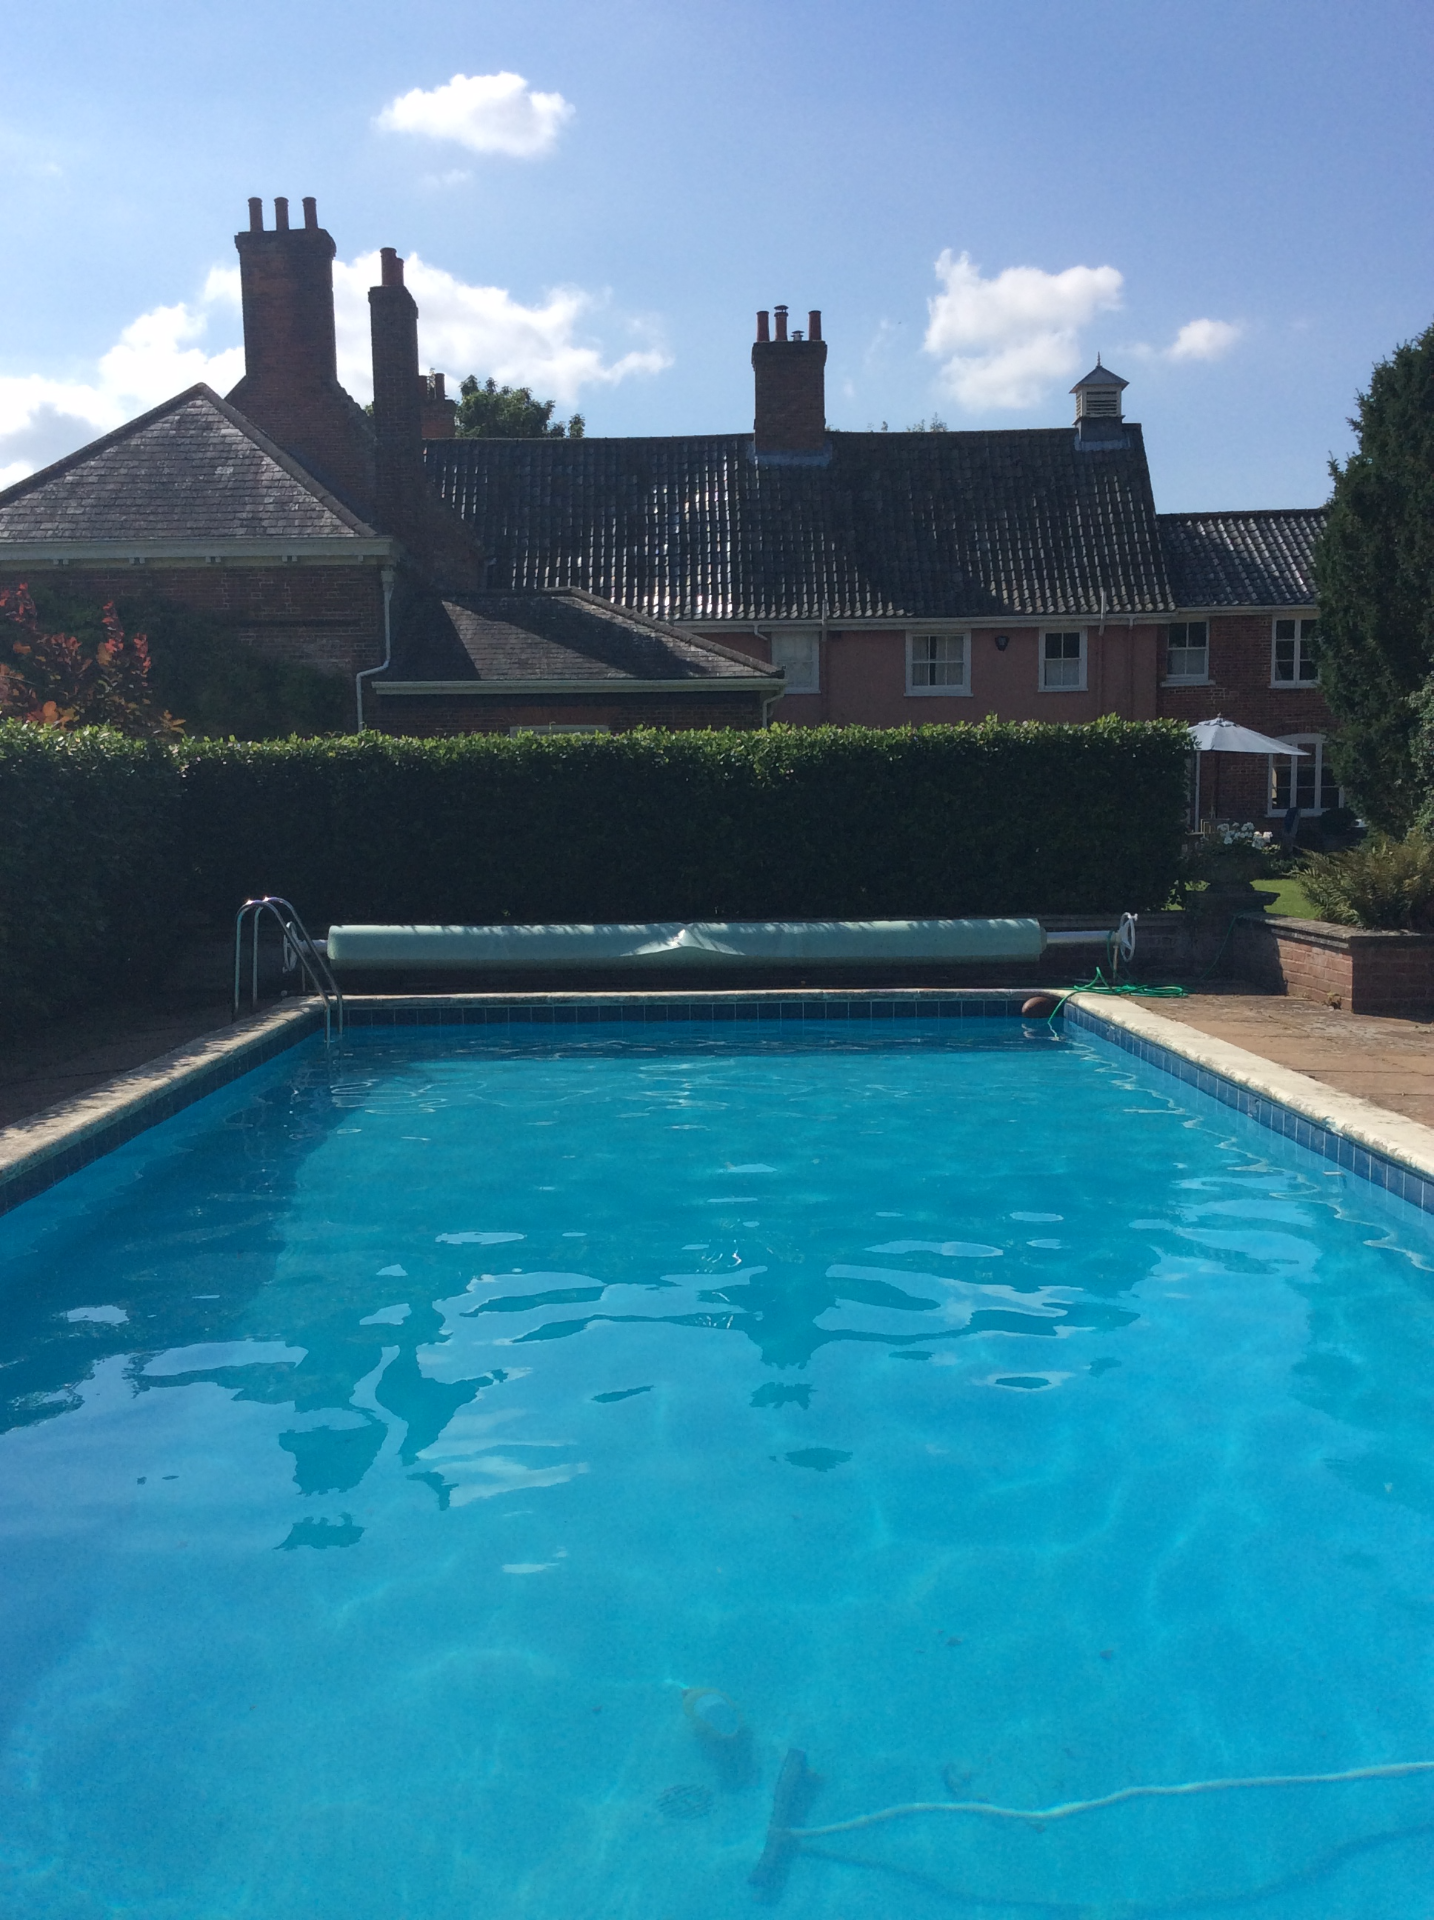 The heated outdoor swimming pool